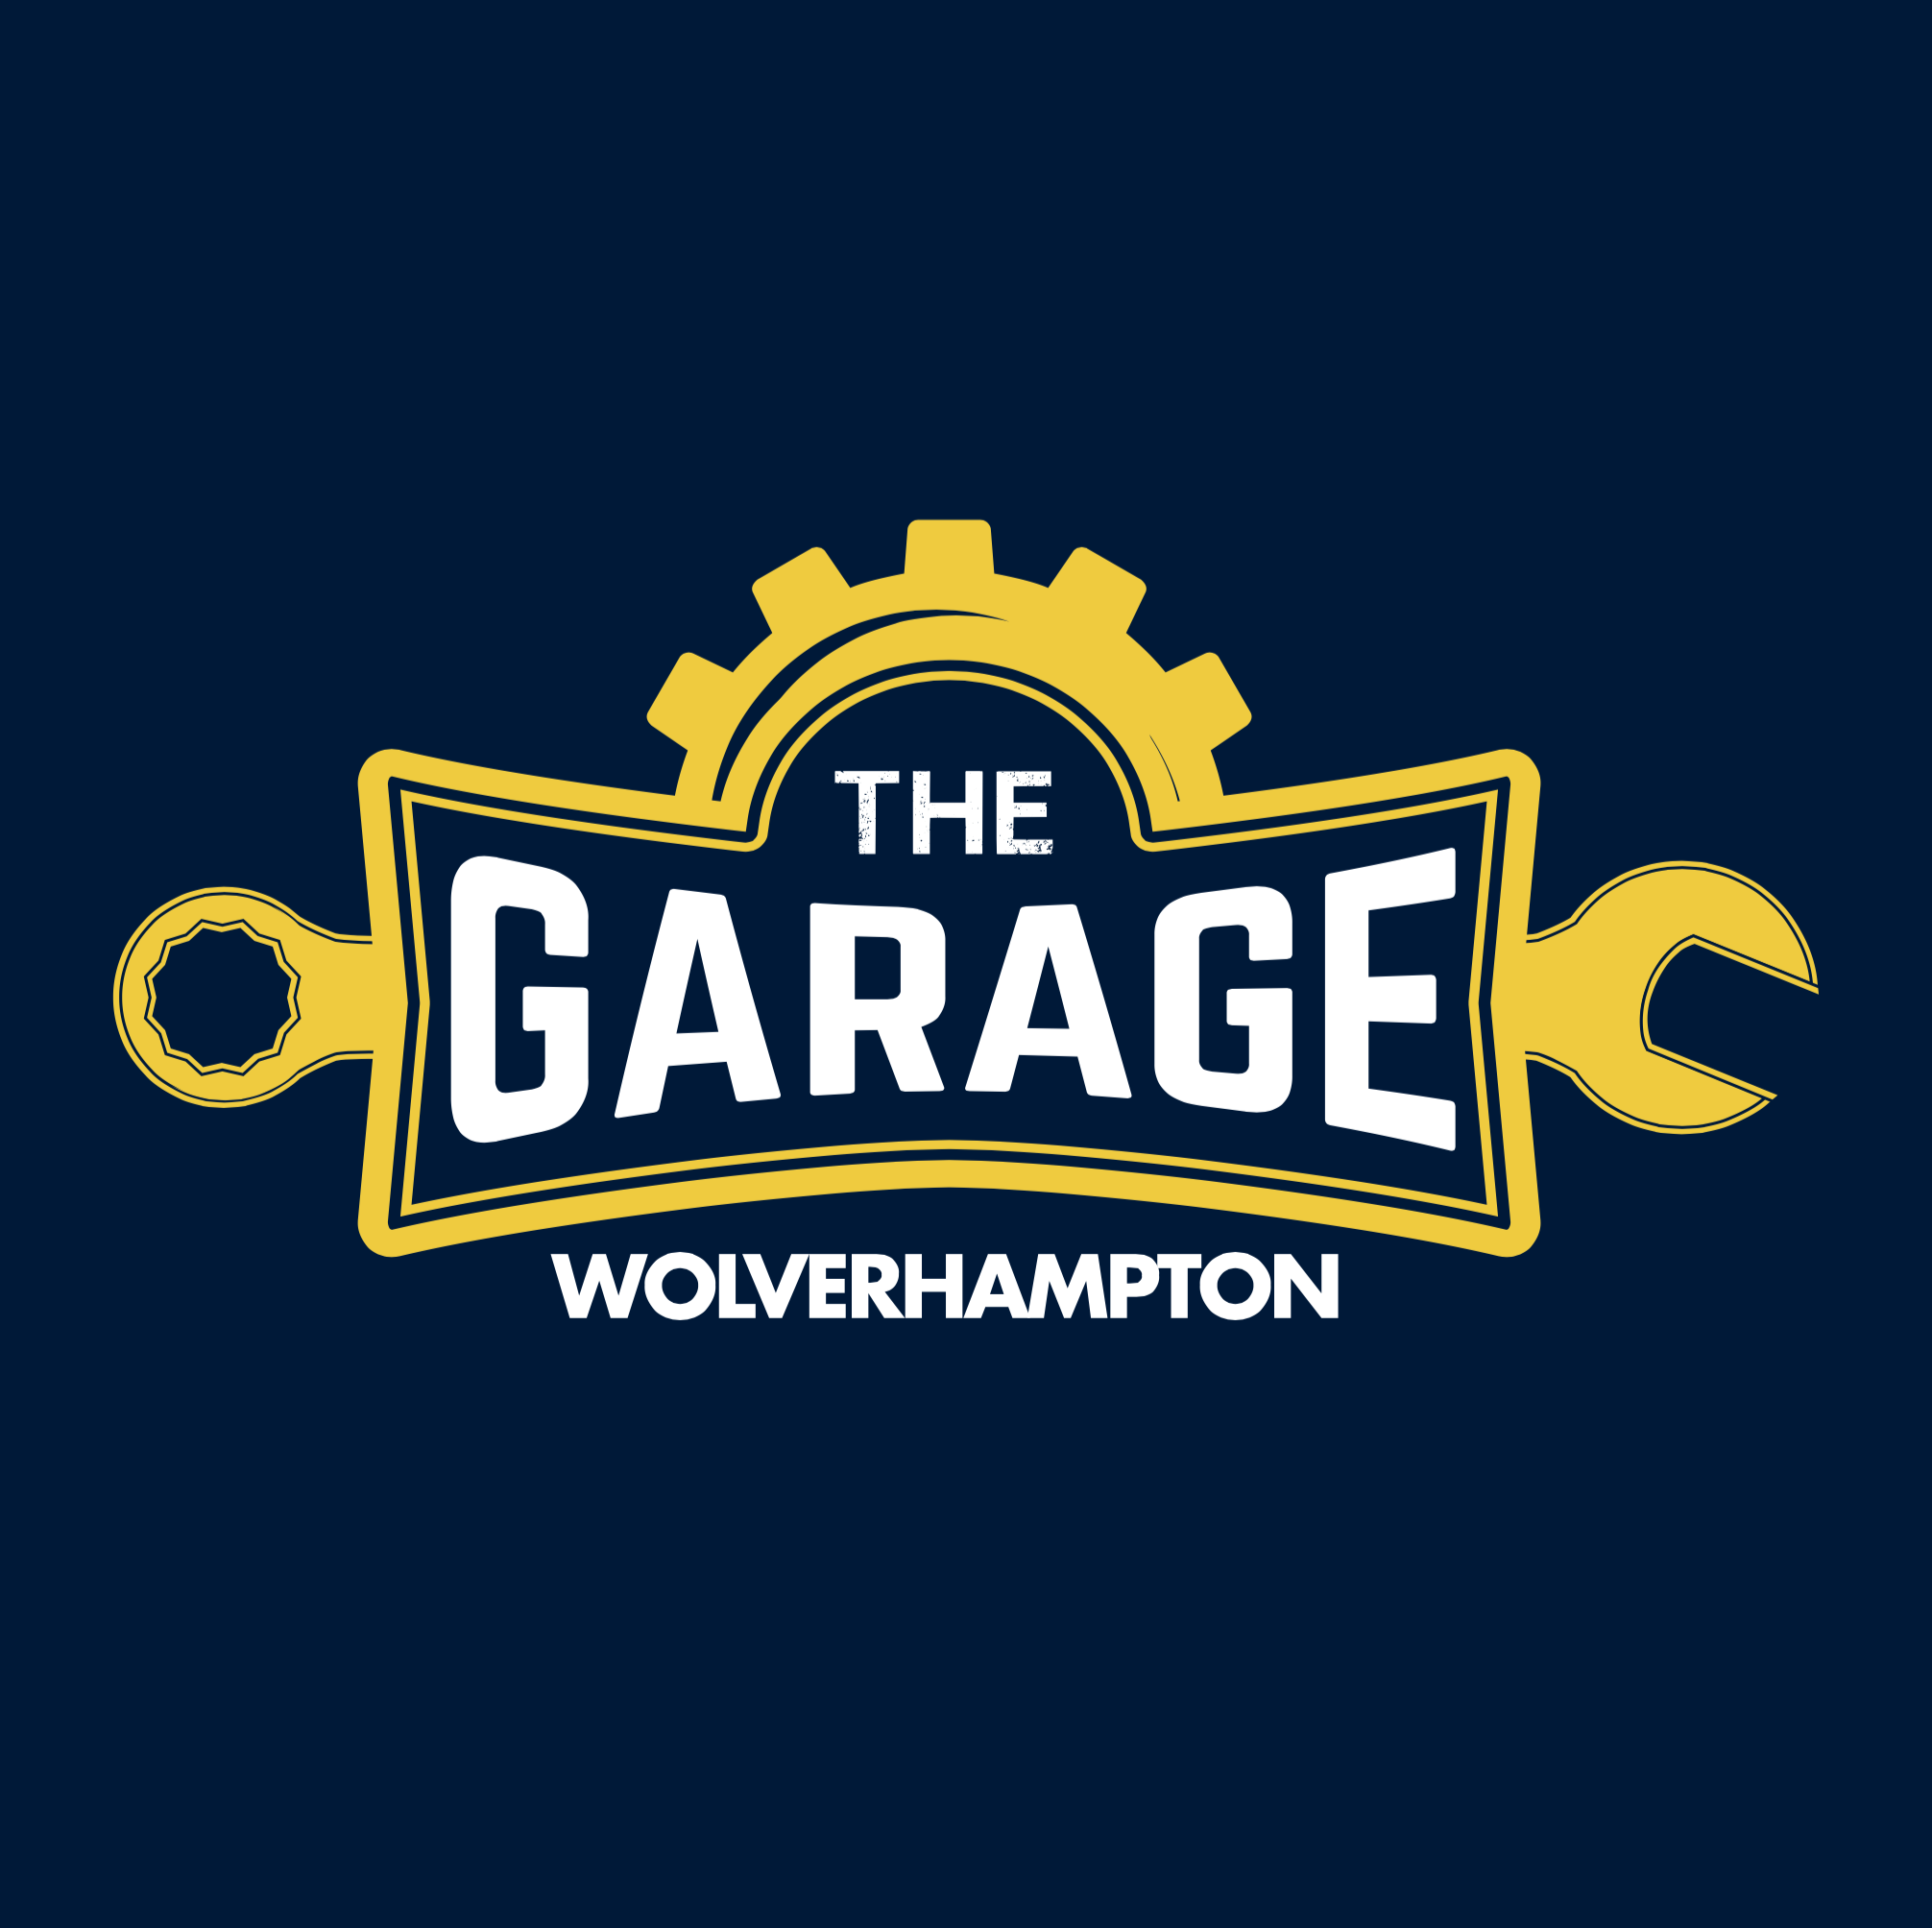 The Garage Wolverhampton